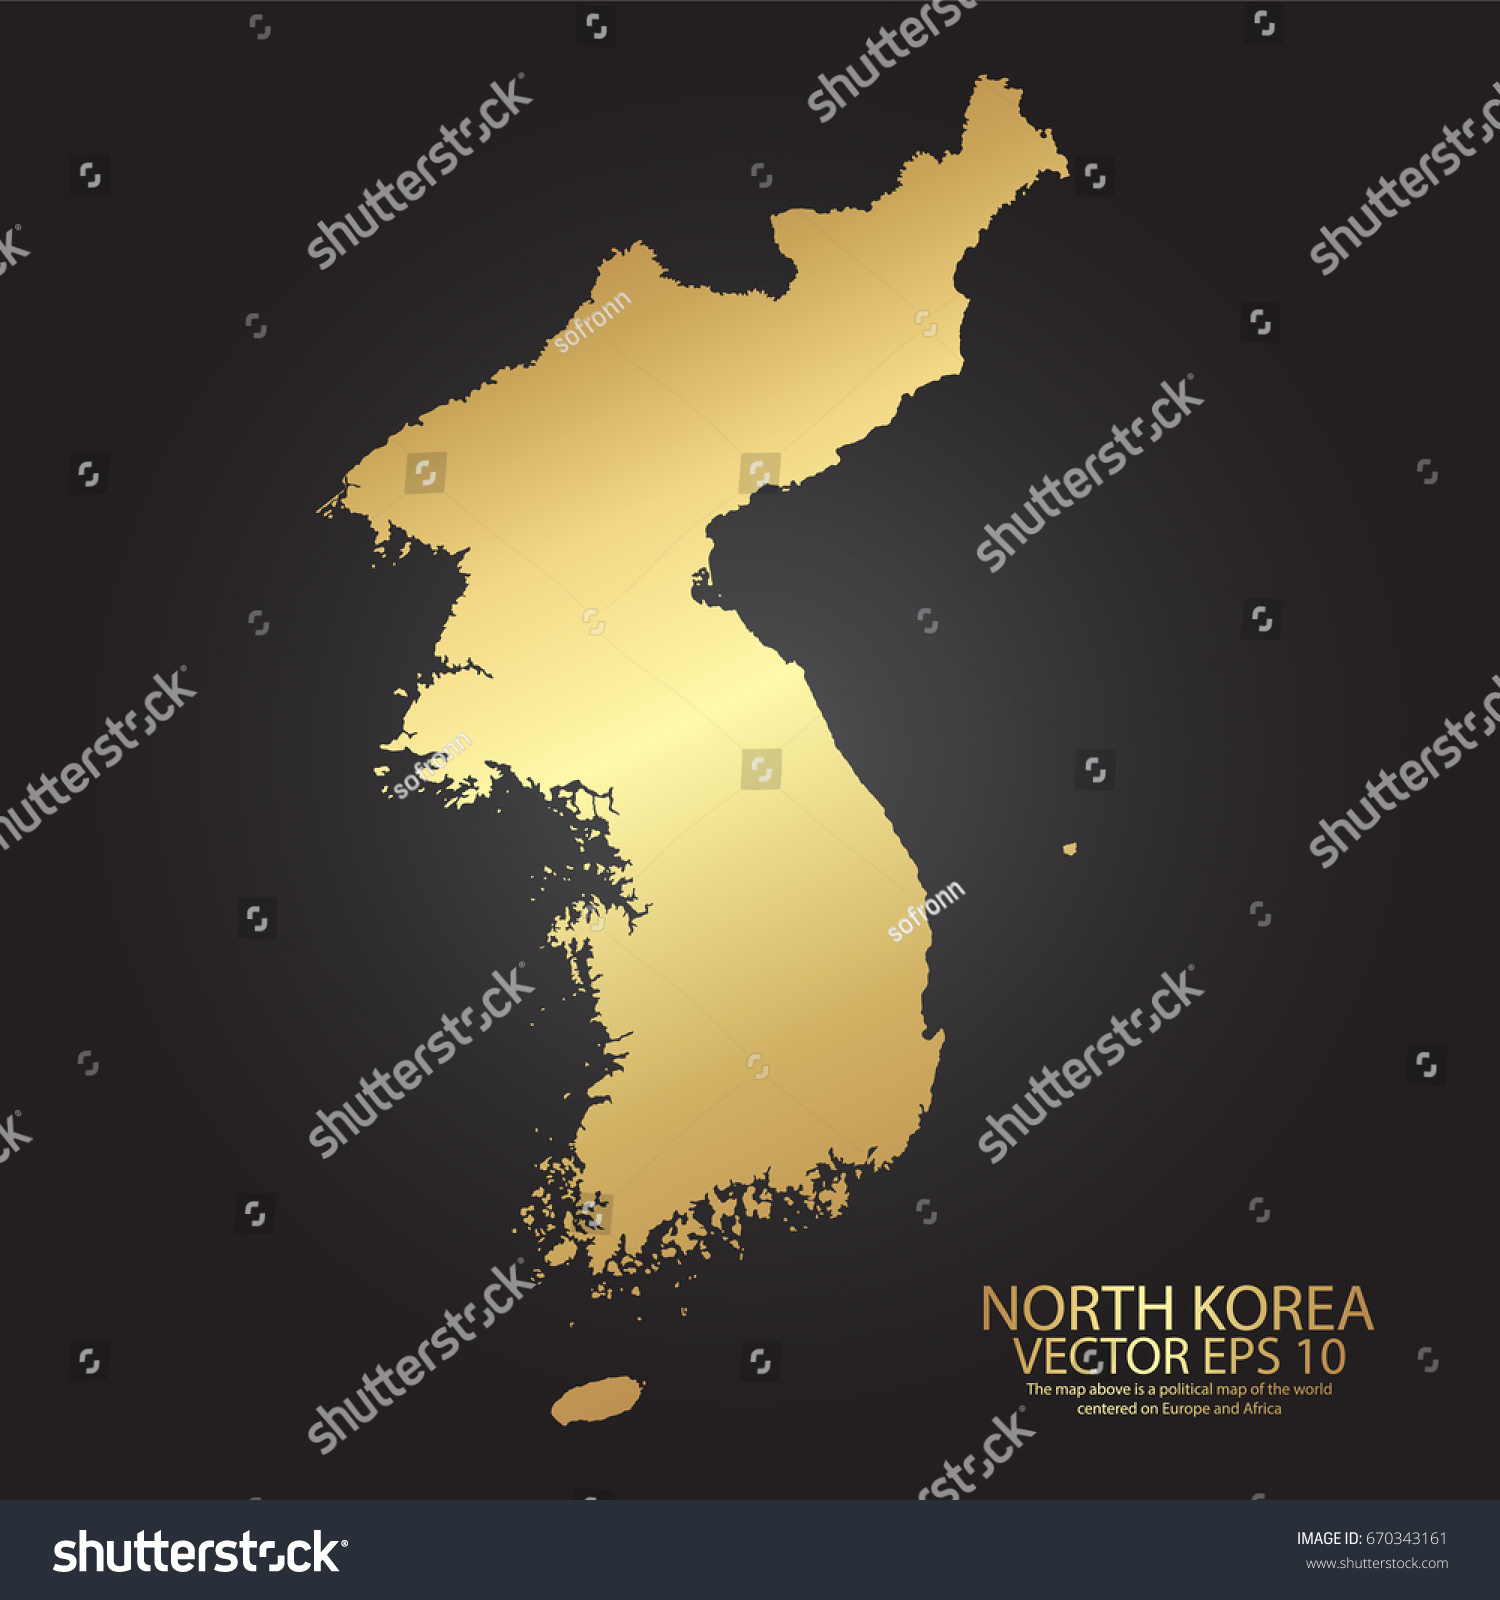 Gold texture map north korea abstract stock vector 670343161 gold texture map of north korea abstract metal empty golden gradient template vector illustration gumiabroncs Choice Image